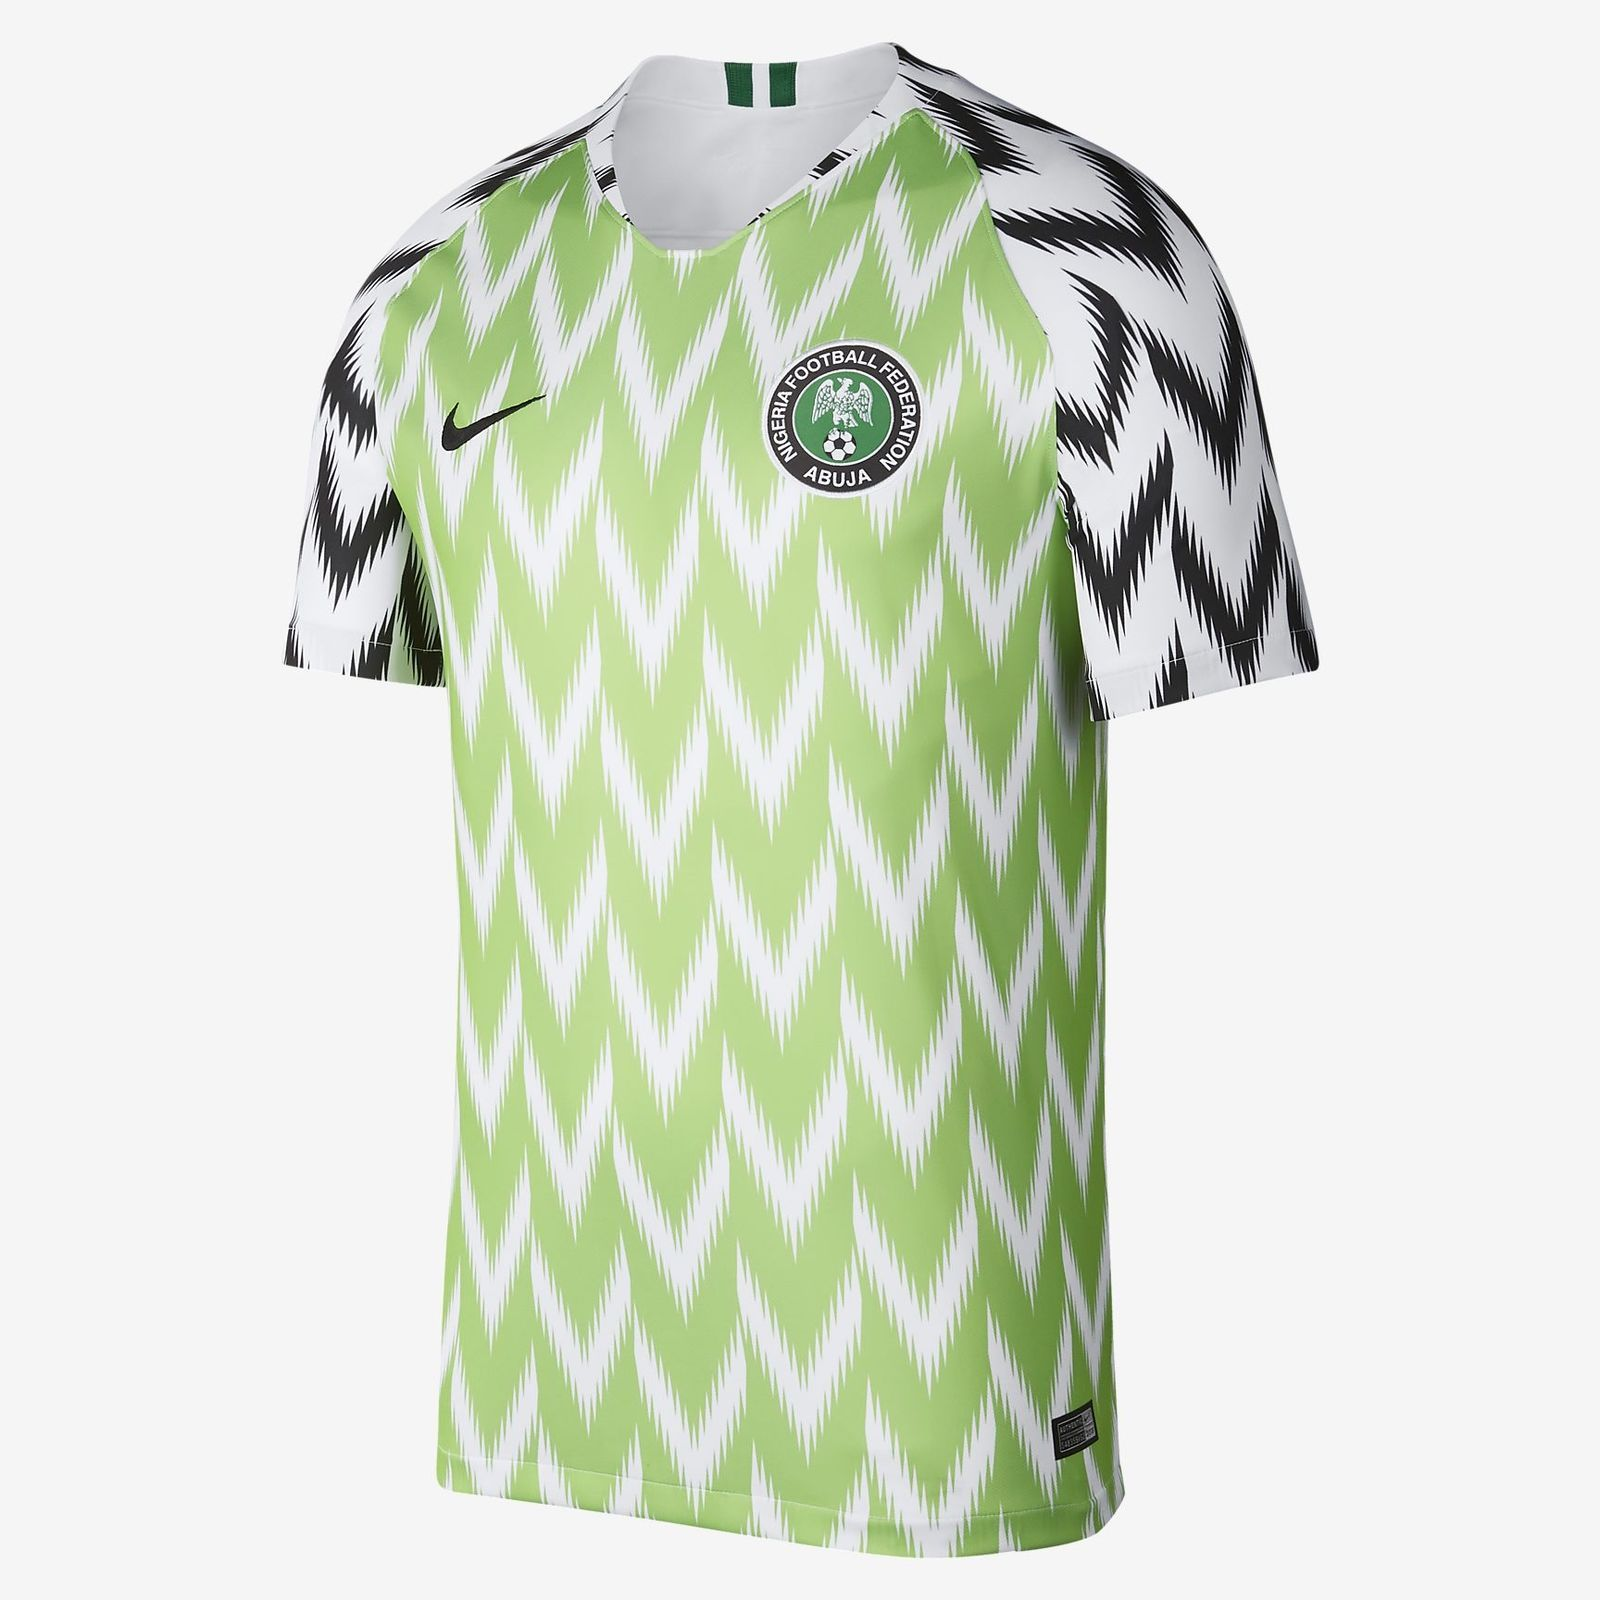 e010d3bfafa 2018 Nike Nigeria Men Home Soccer Jersey 893886-100 WORLD CUP Medium XXL  2Xl Discount Price 225.00 Free Shipping Buy it Now